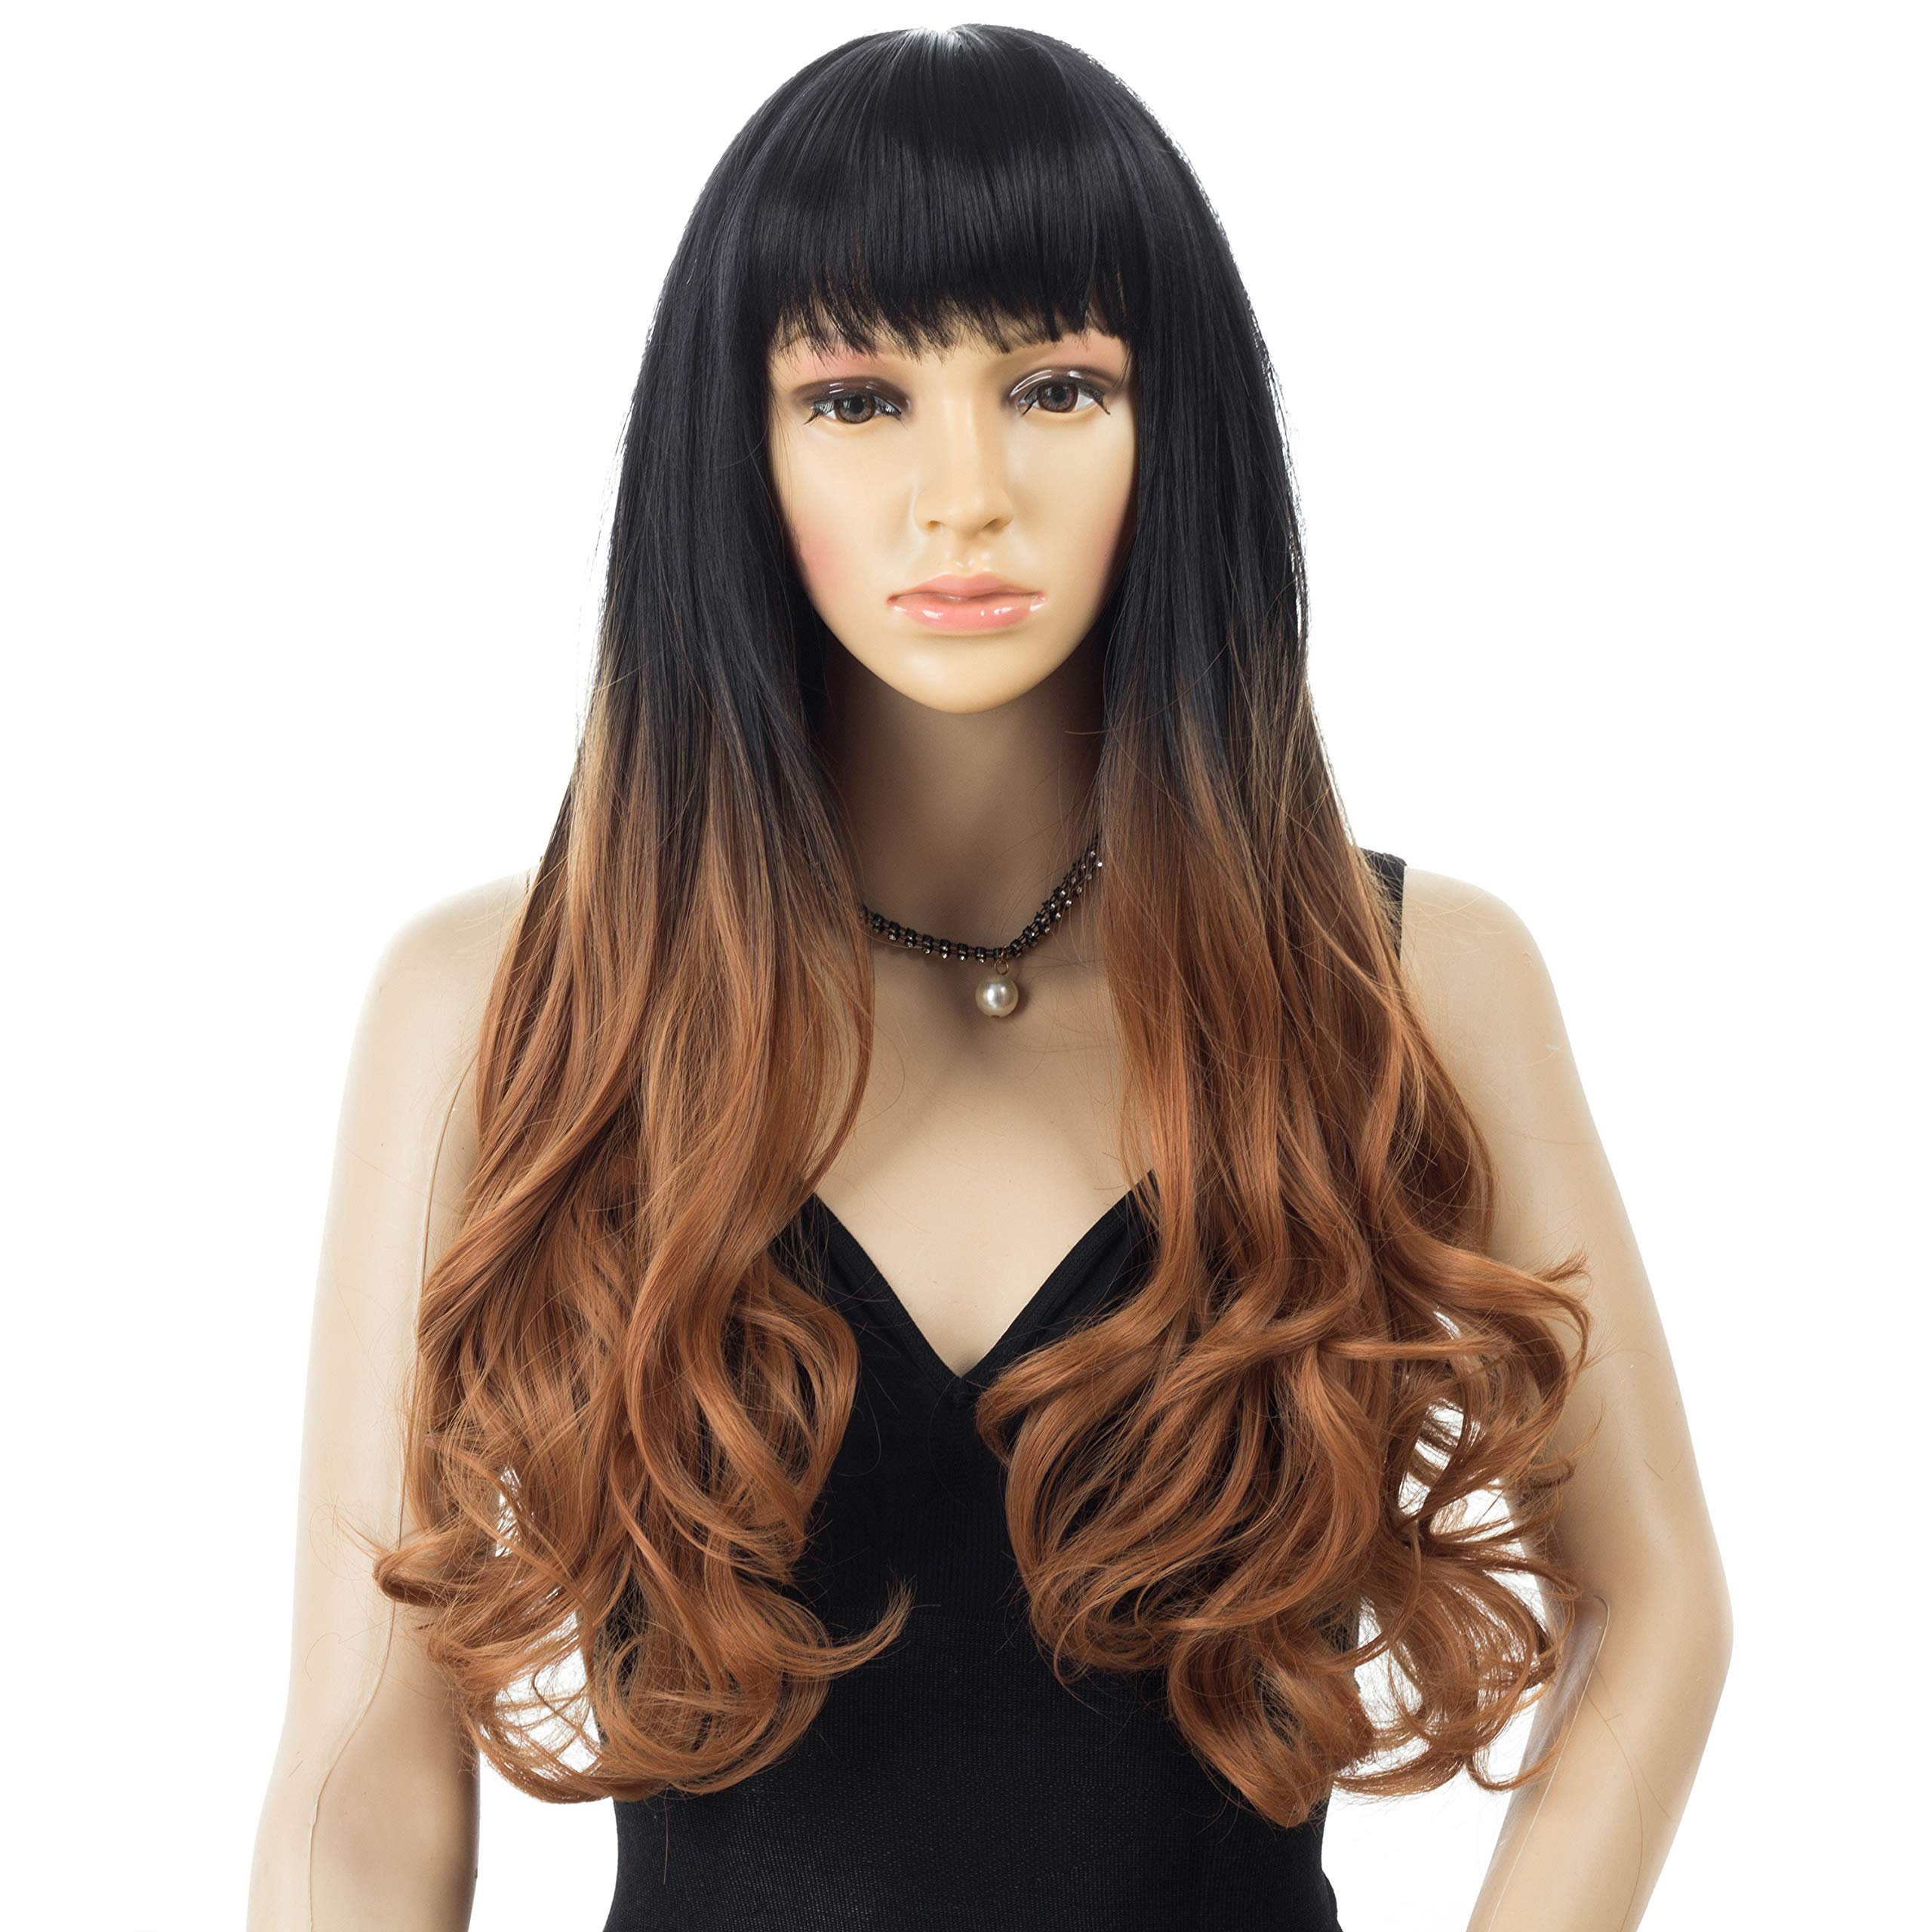 HRClever 22INCH Long Curly Wavy Wigs, Ombre Brown Wigs for Women With Bangs,Hair Piece Natural as Real,Two Tone Dark Root to Brown,Hair Replacement Wigs, Daily Party Cosplay Costume Wigs(